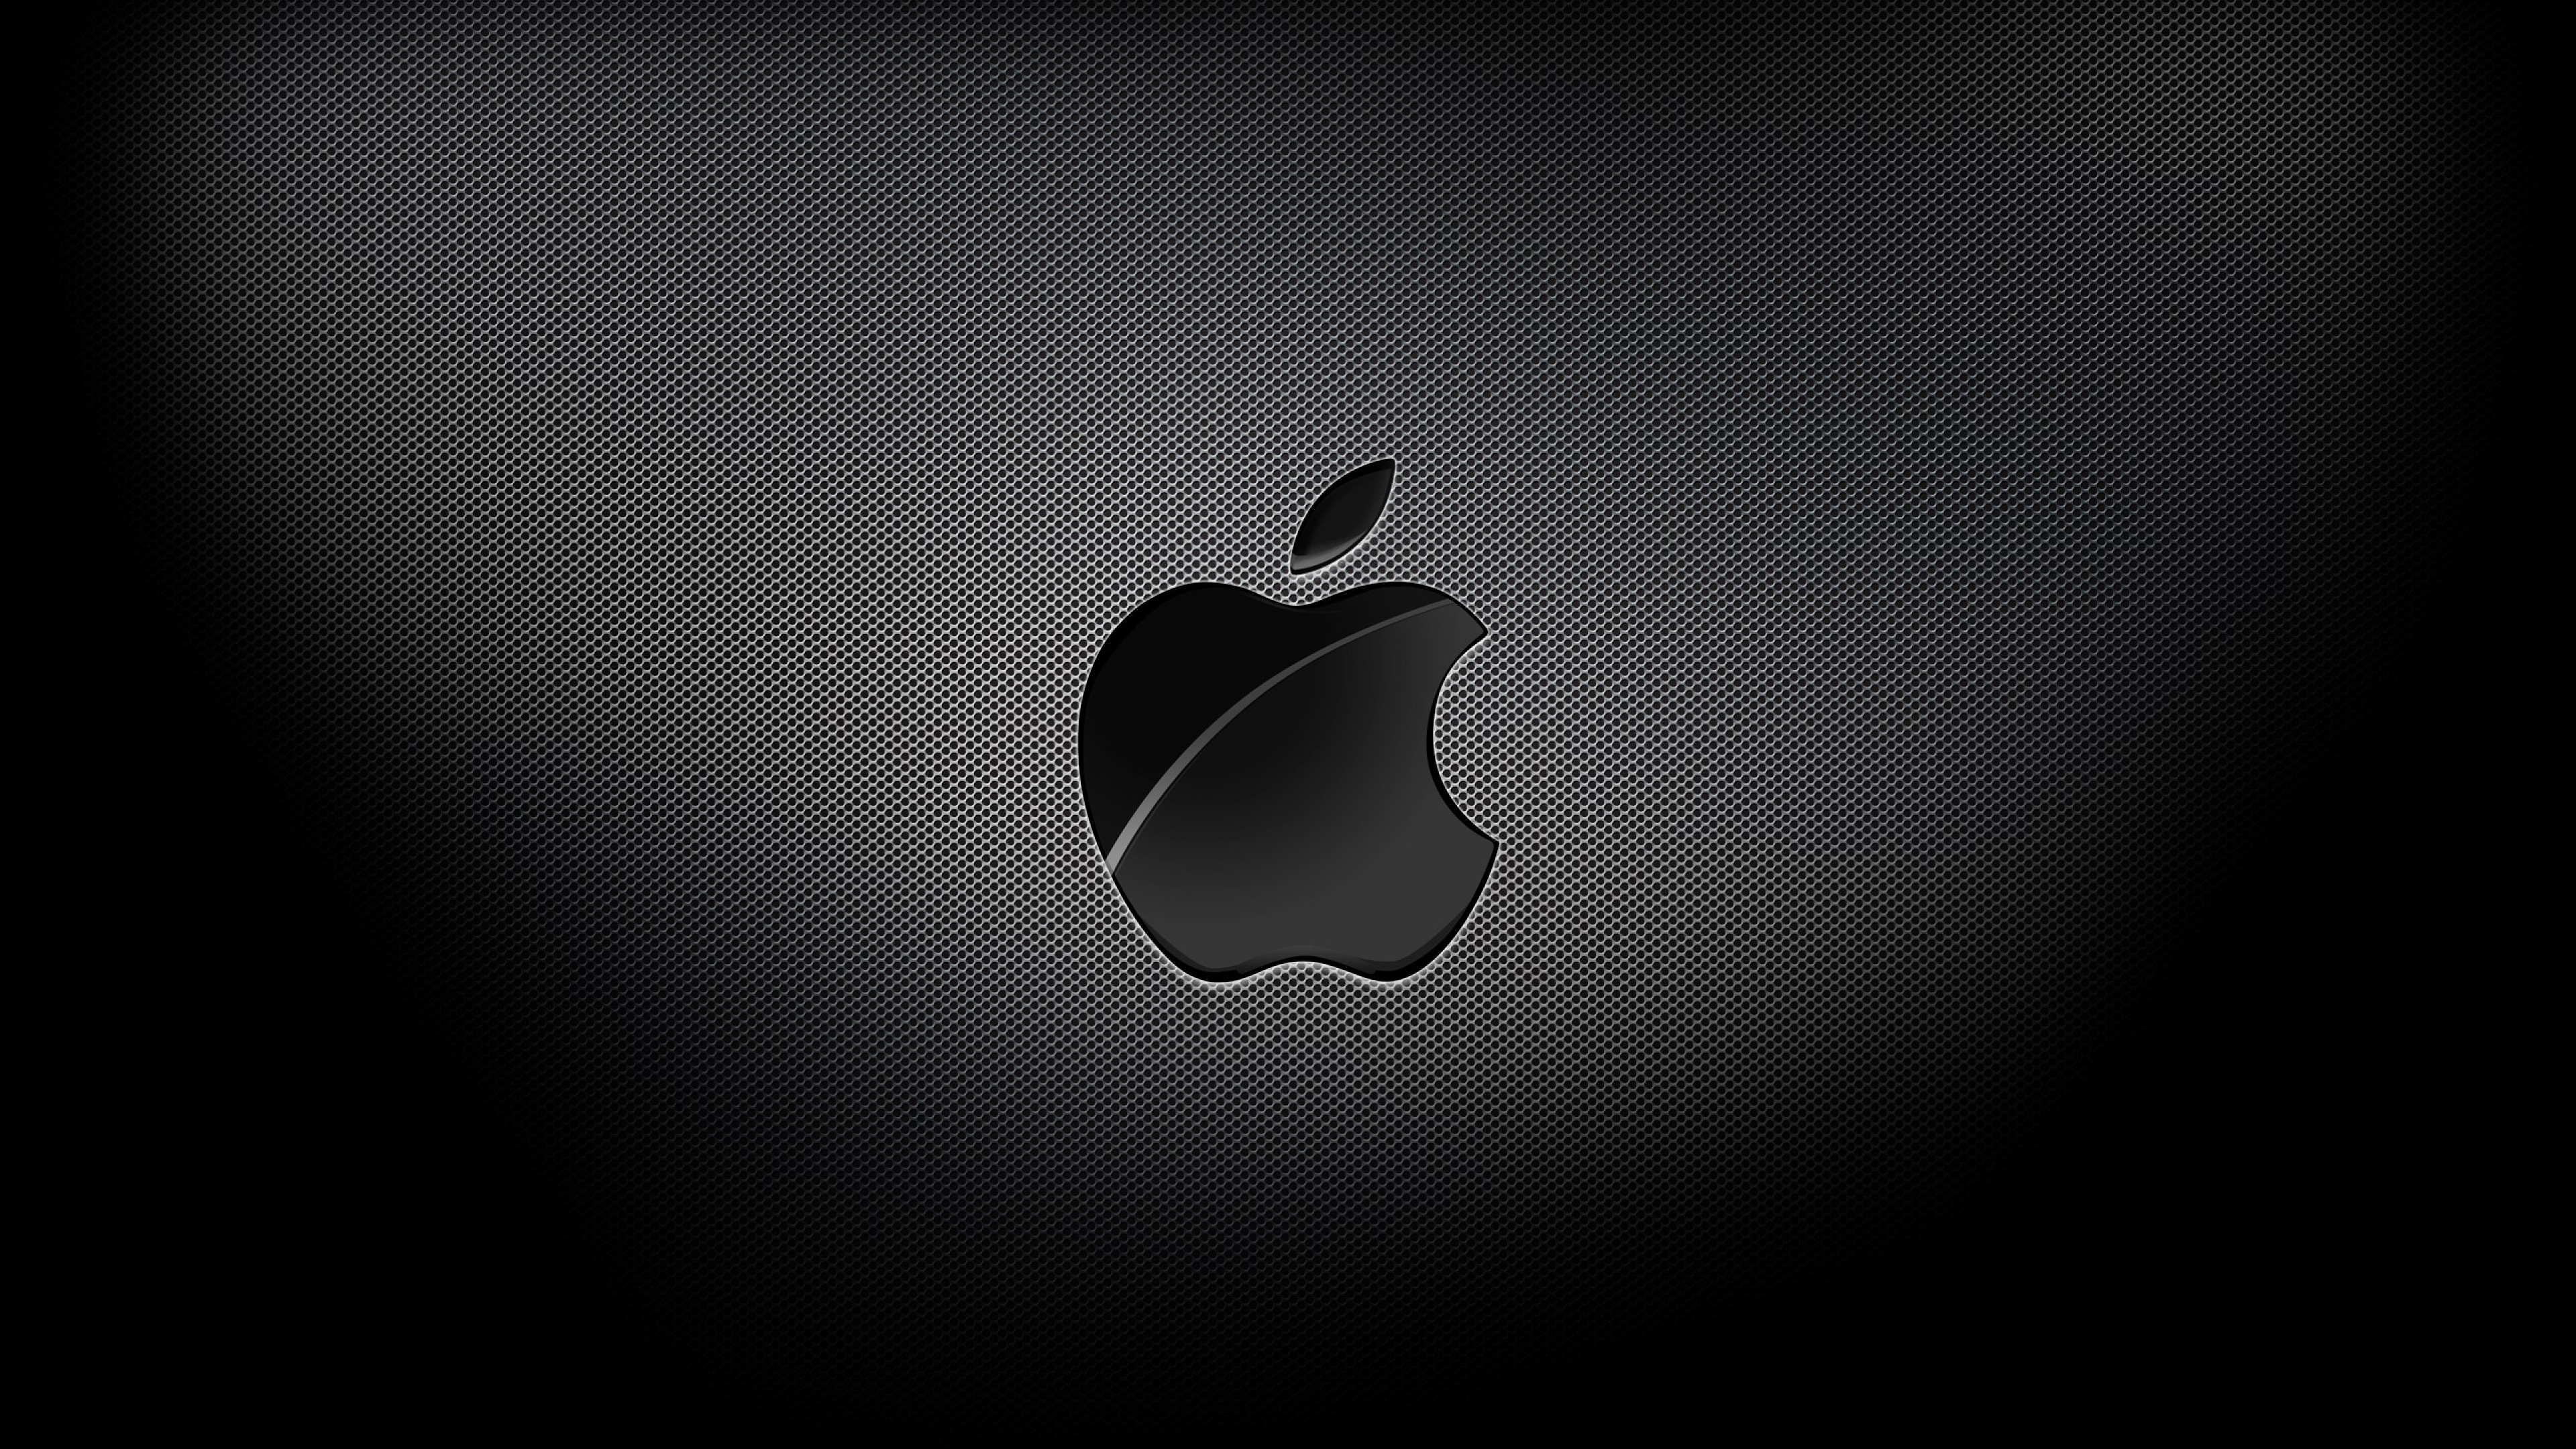 3840x2160 Wallpaper apple mac brand logo dark light shadow 3840x2160